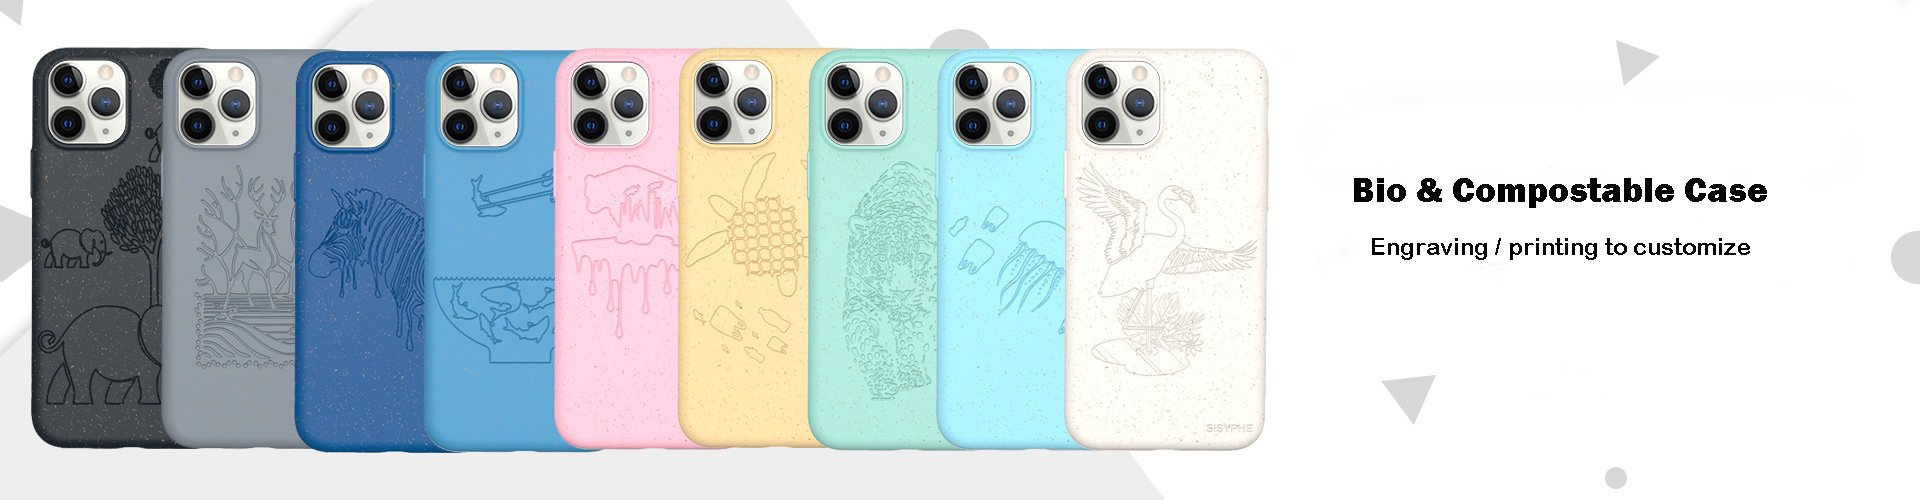 compostable phone covers with engraved pattern